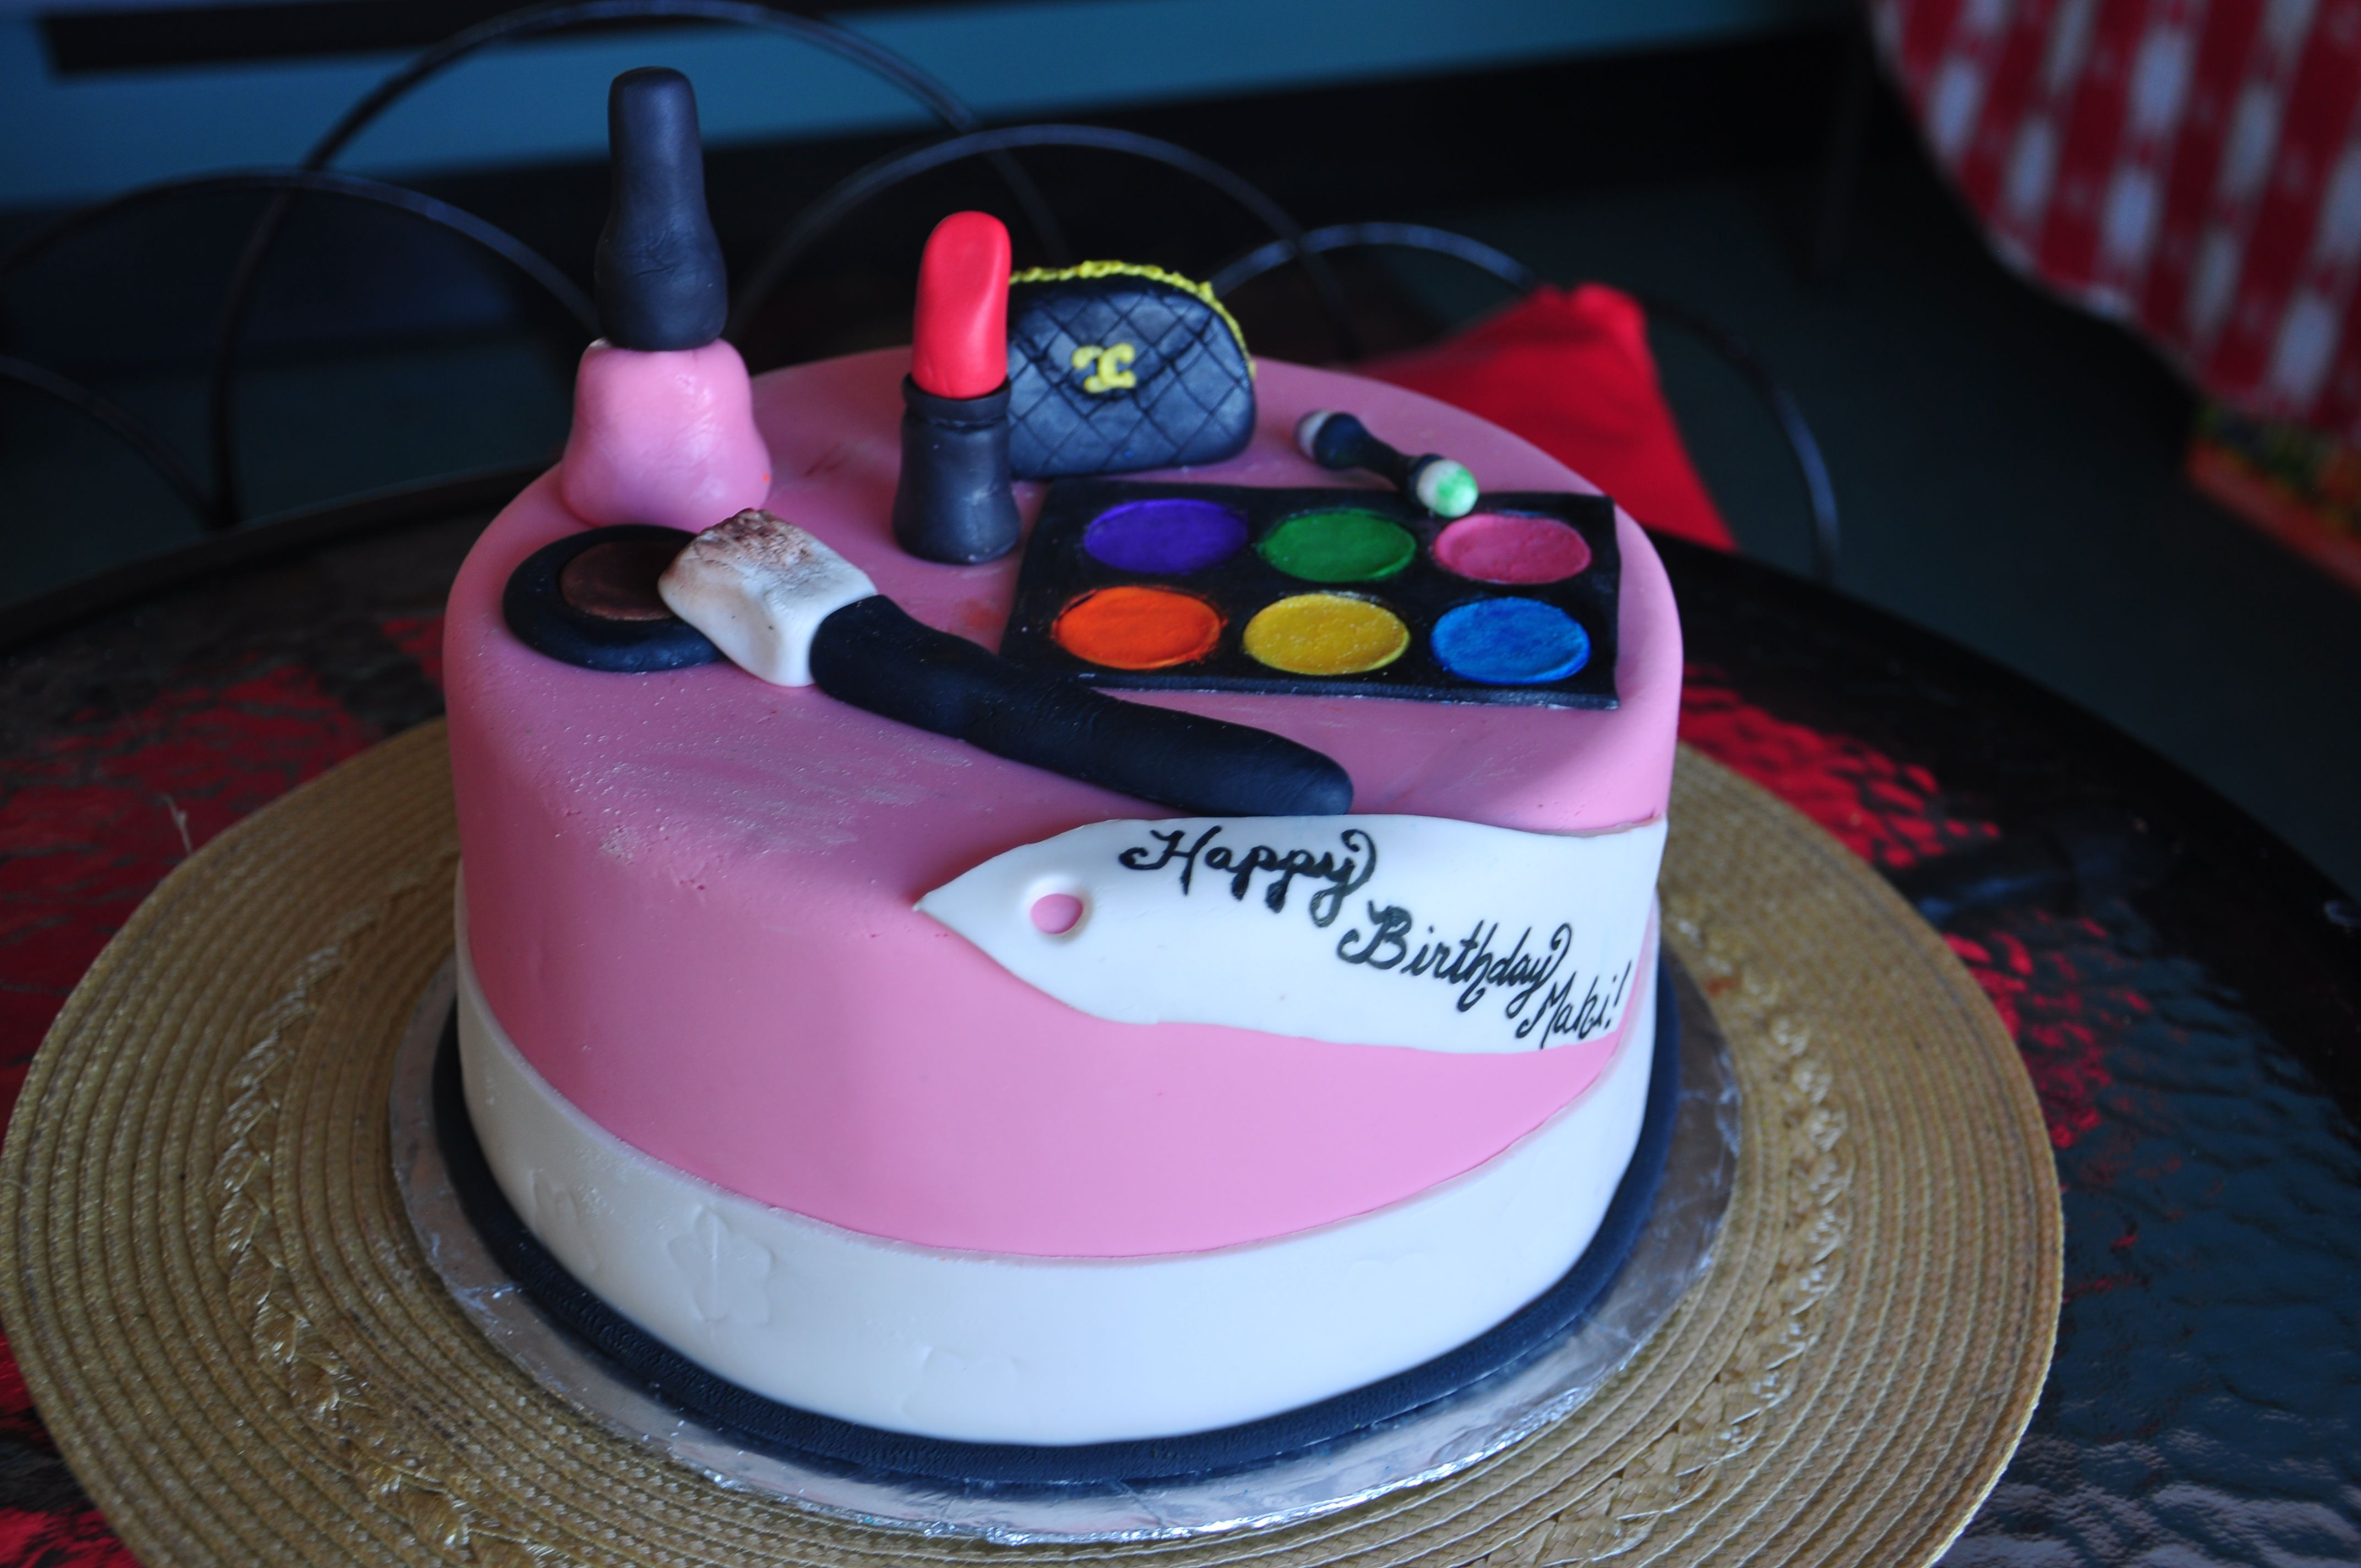 Enjoyable Fondant Makeup Birthday Cake From Marcos Bakery And Chris Birthday Cards Printable Trancafe Filternl